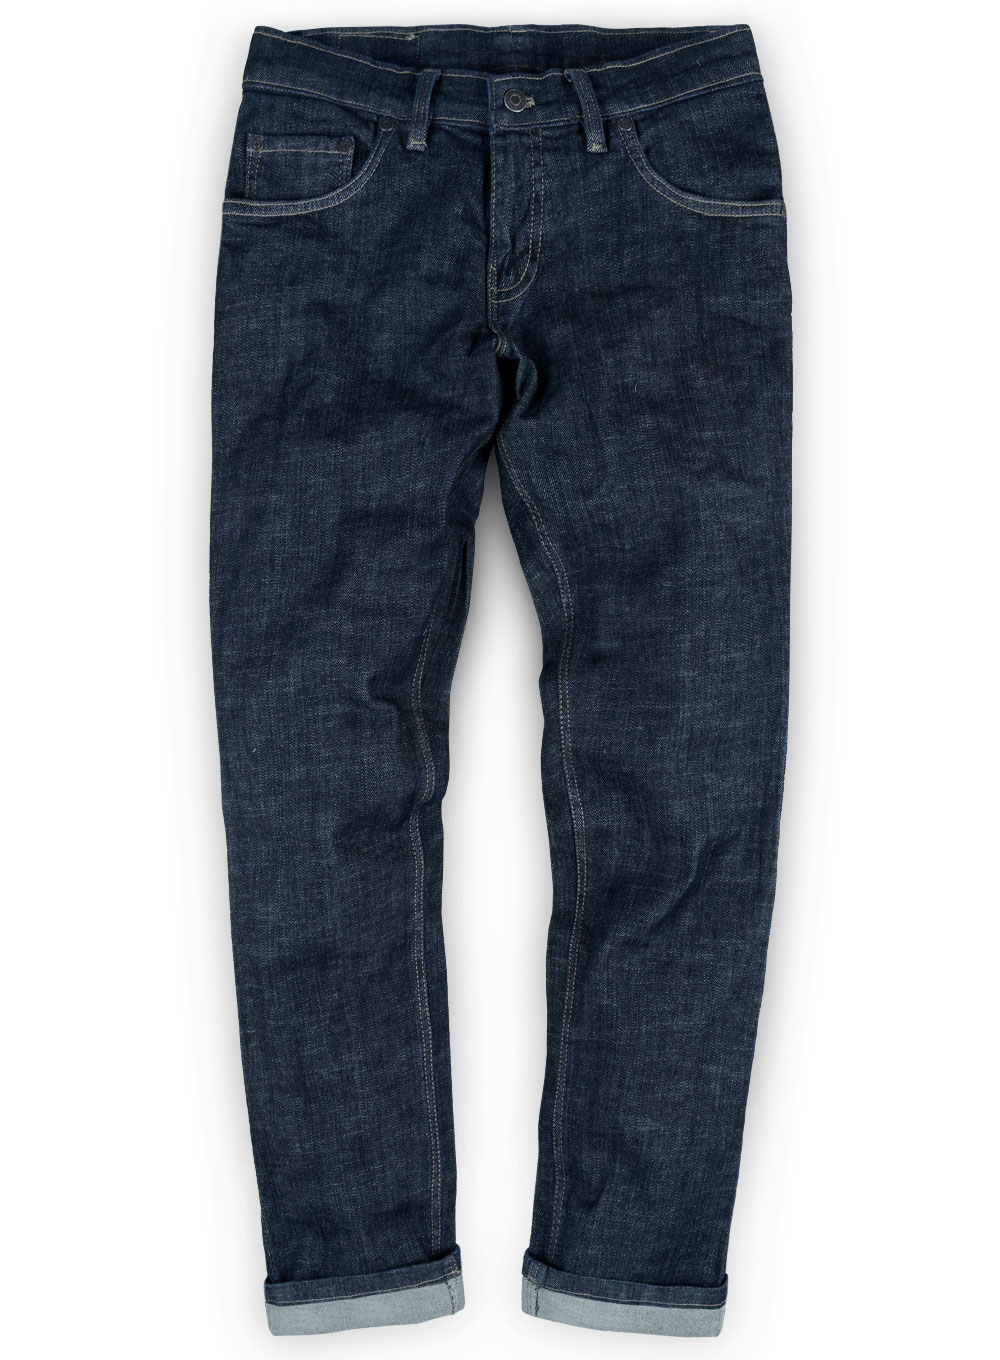 Style Jeans For Men